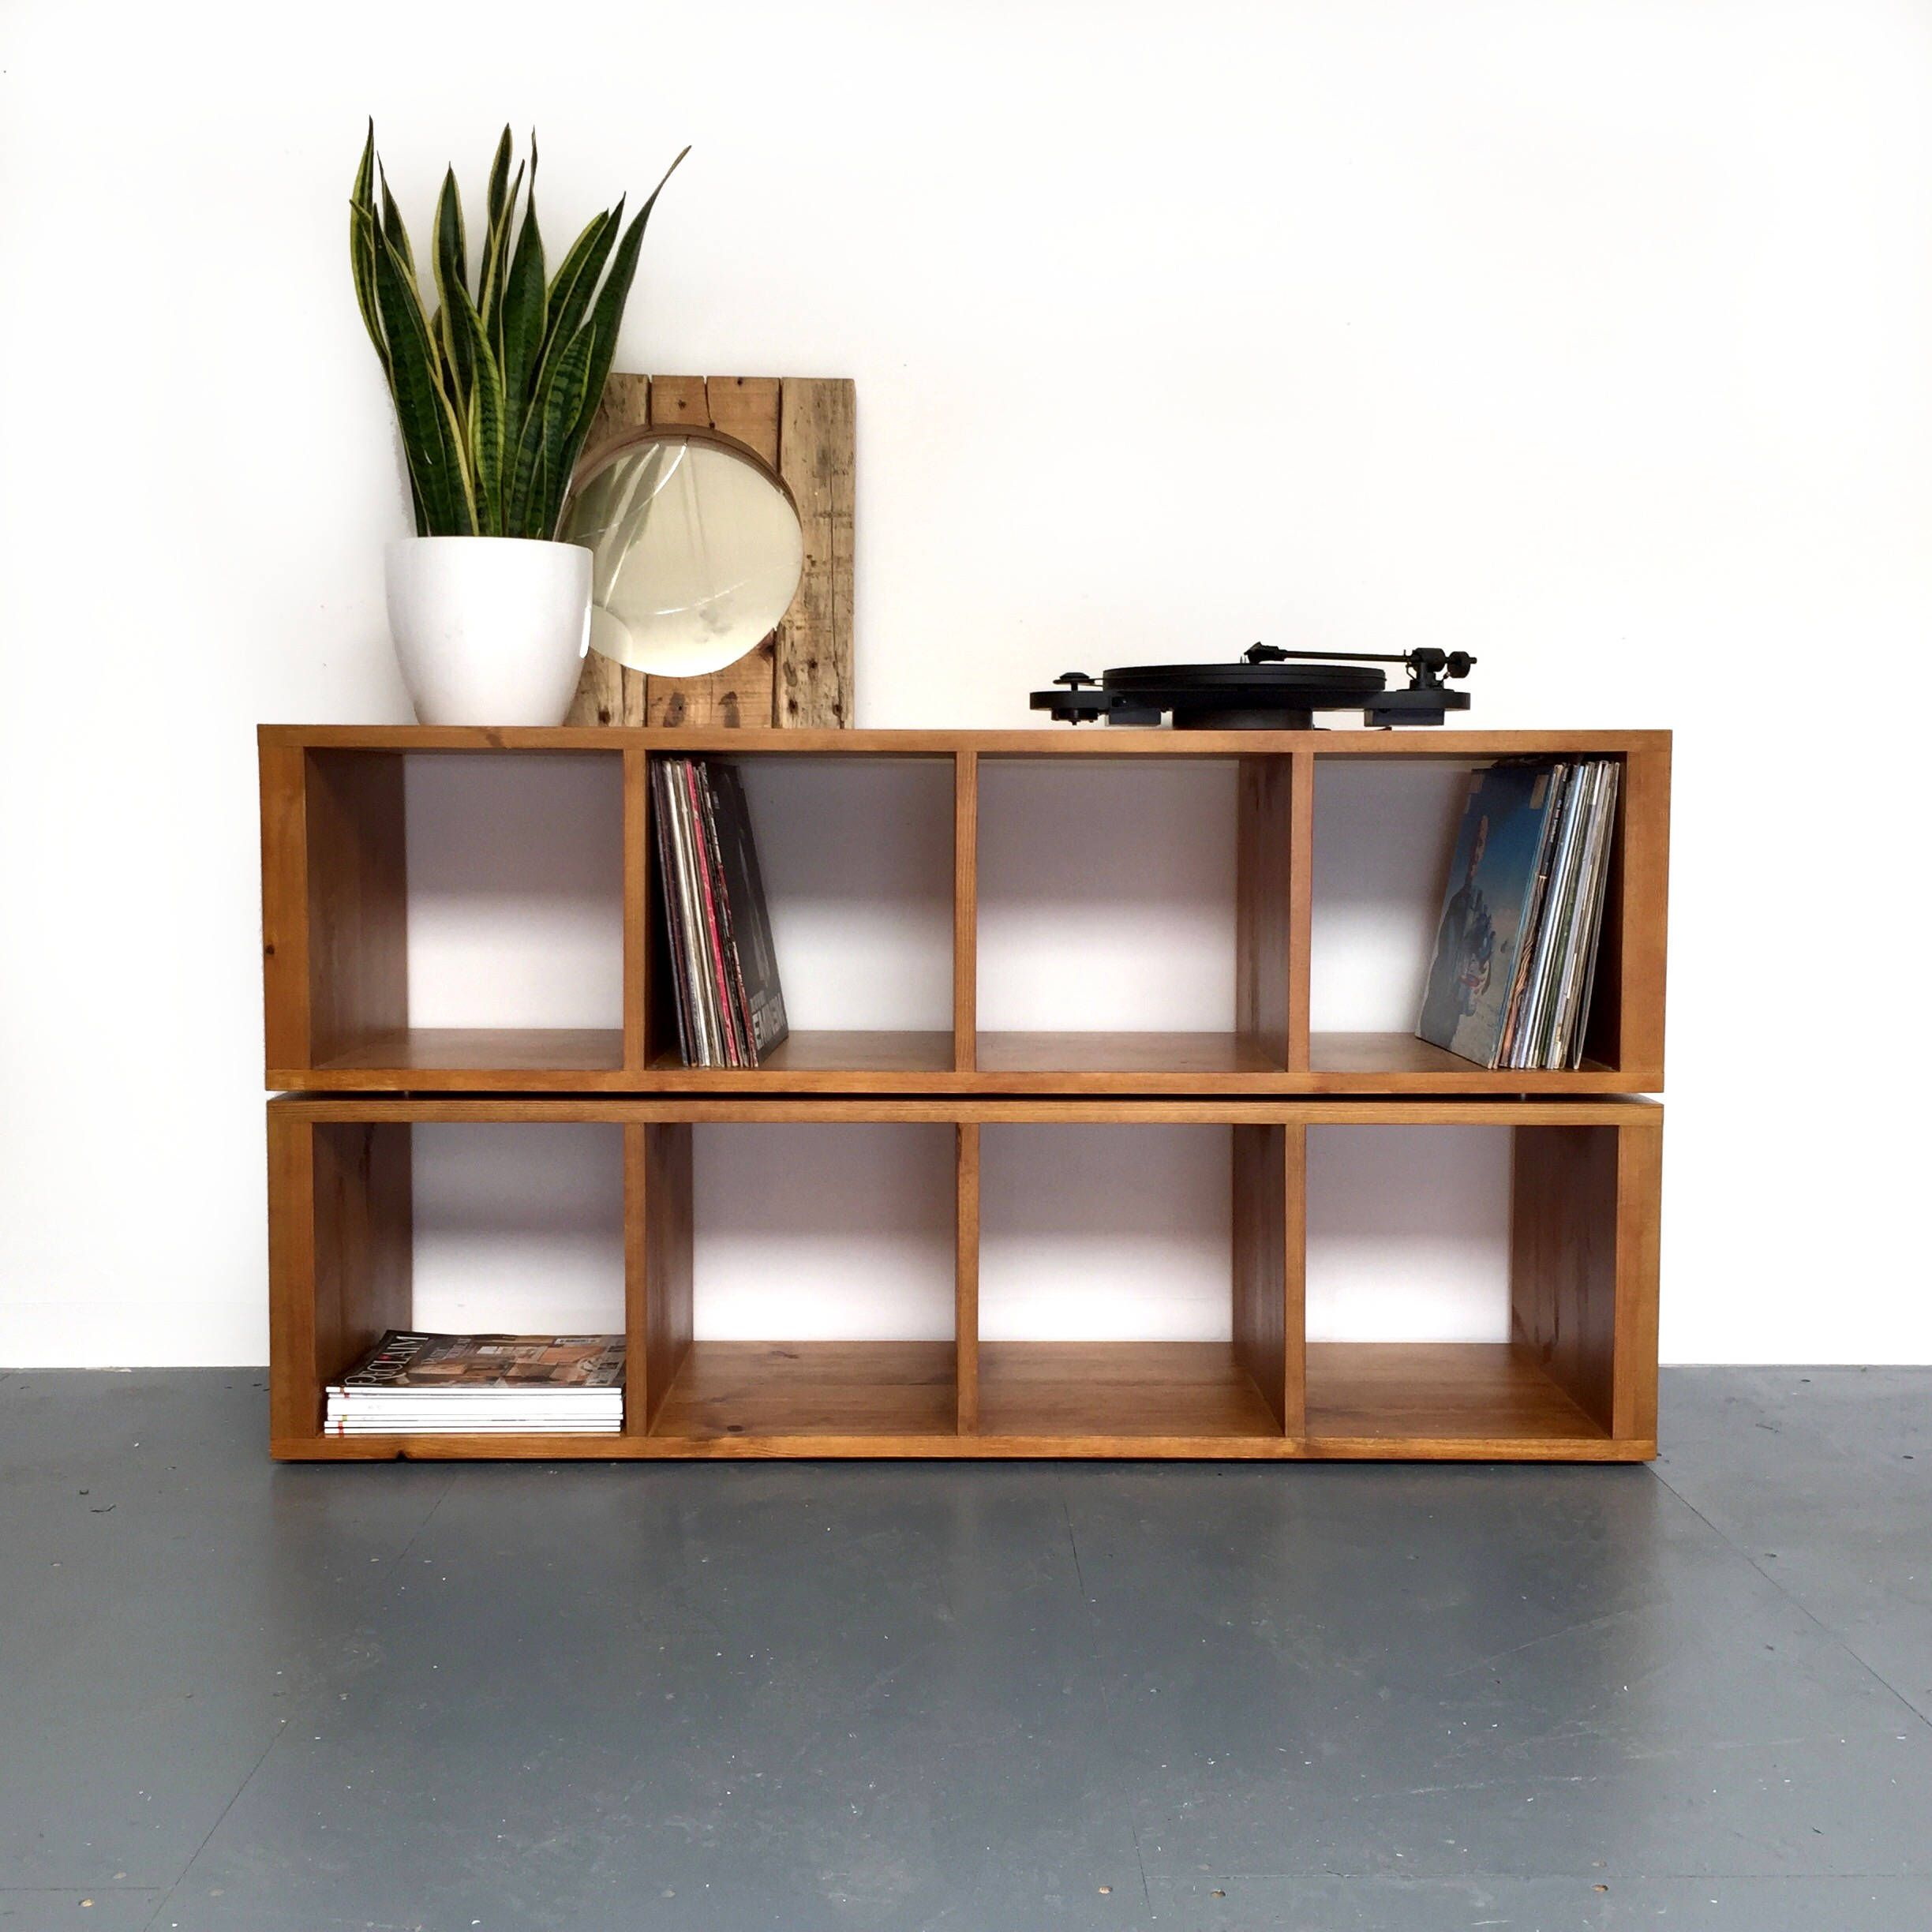 Sonor Double Height Vinyl Record Storage Shelving Solid Wood ...